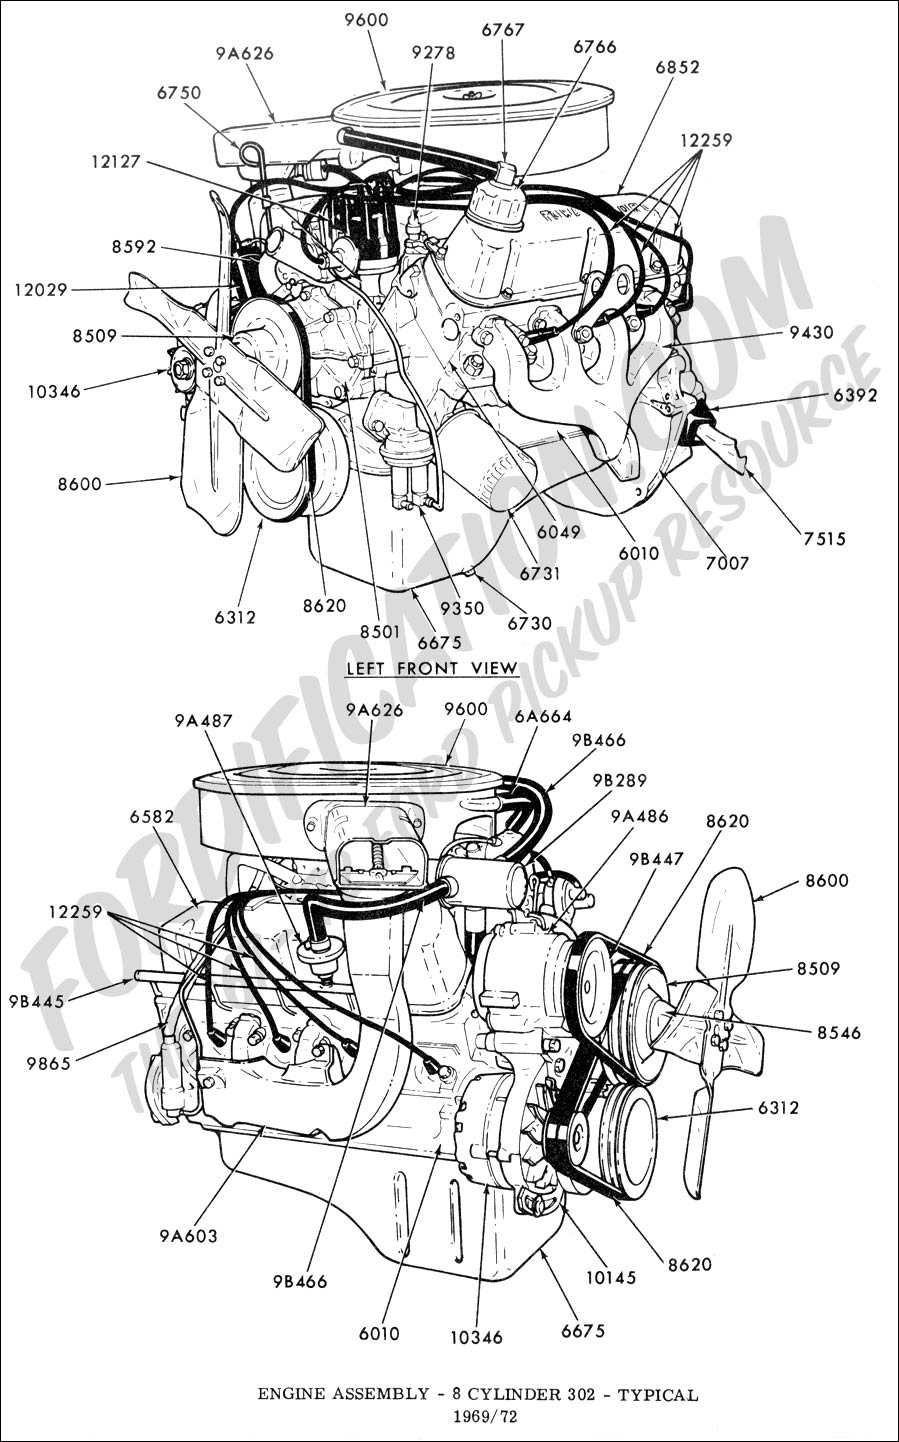 [WRG-7159] 1986 Mustang Gt Engine Diagram